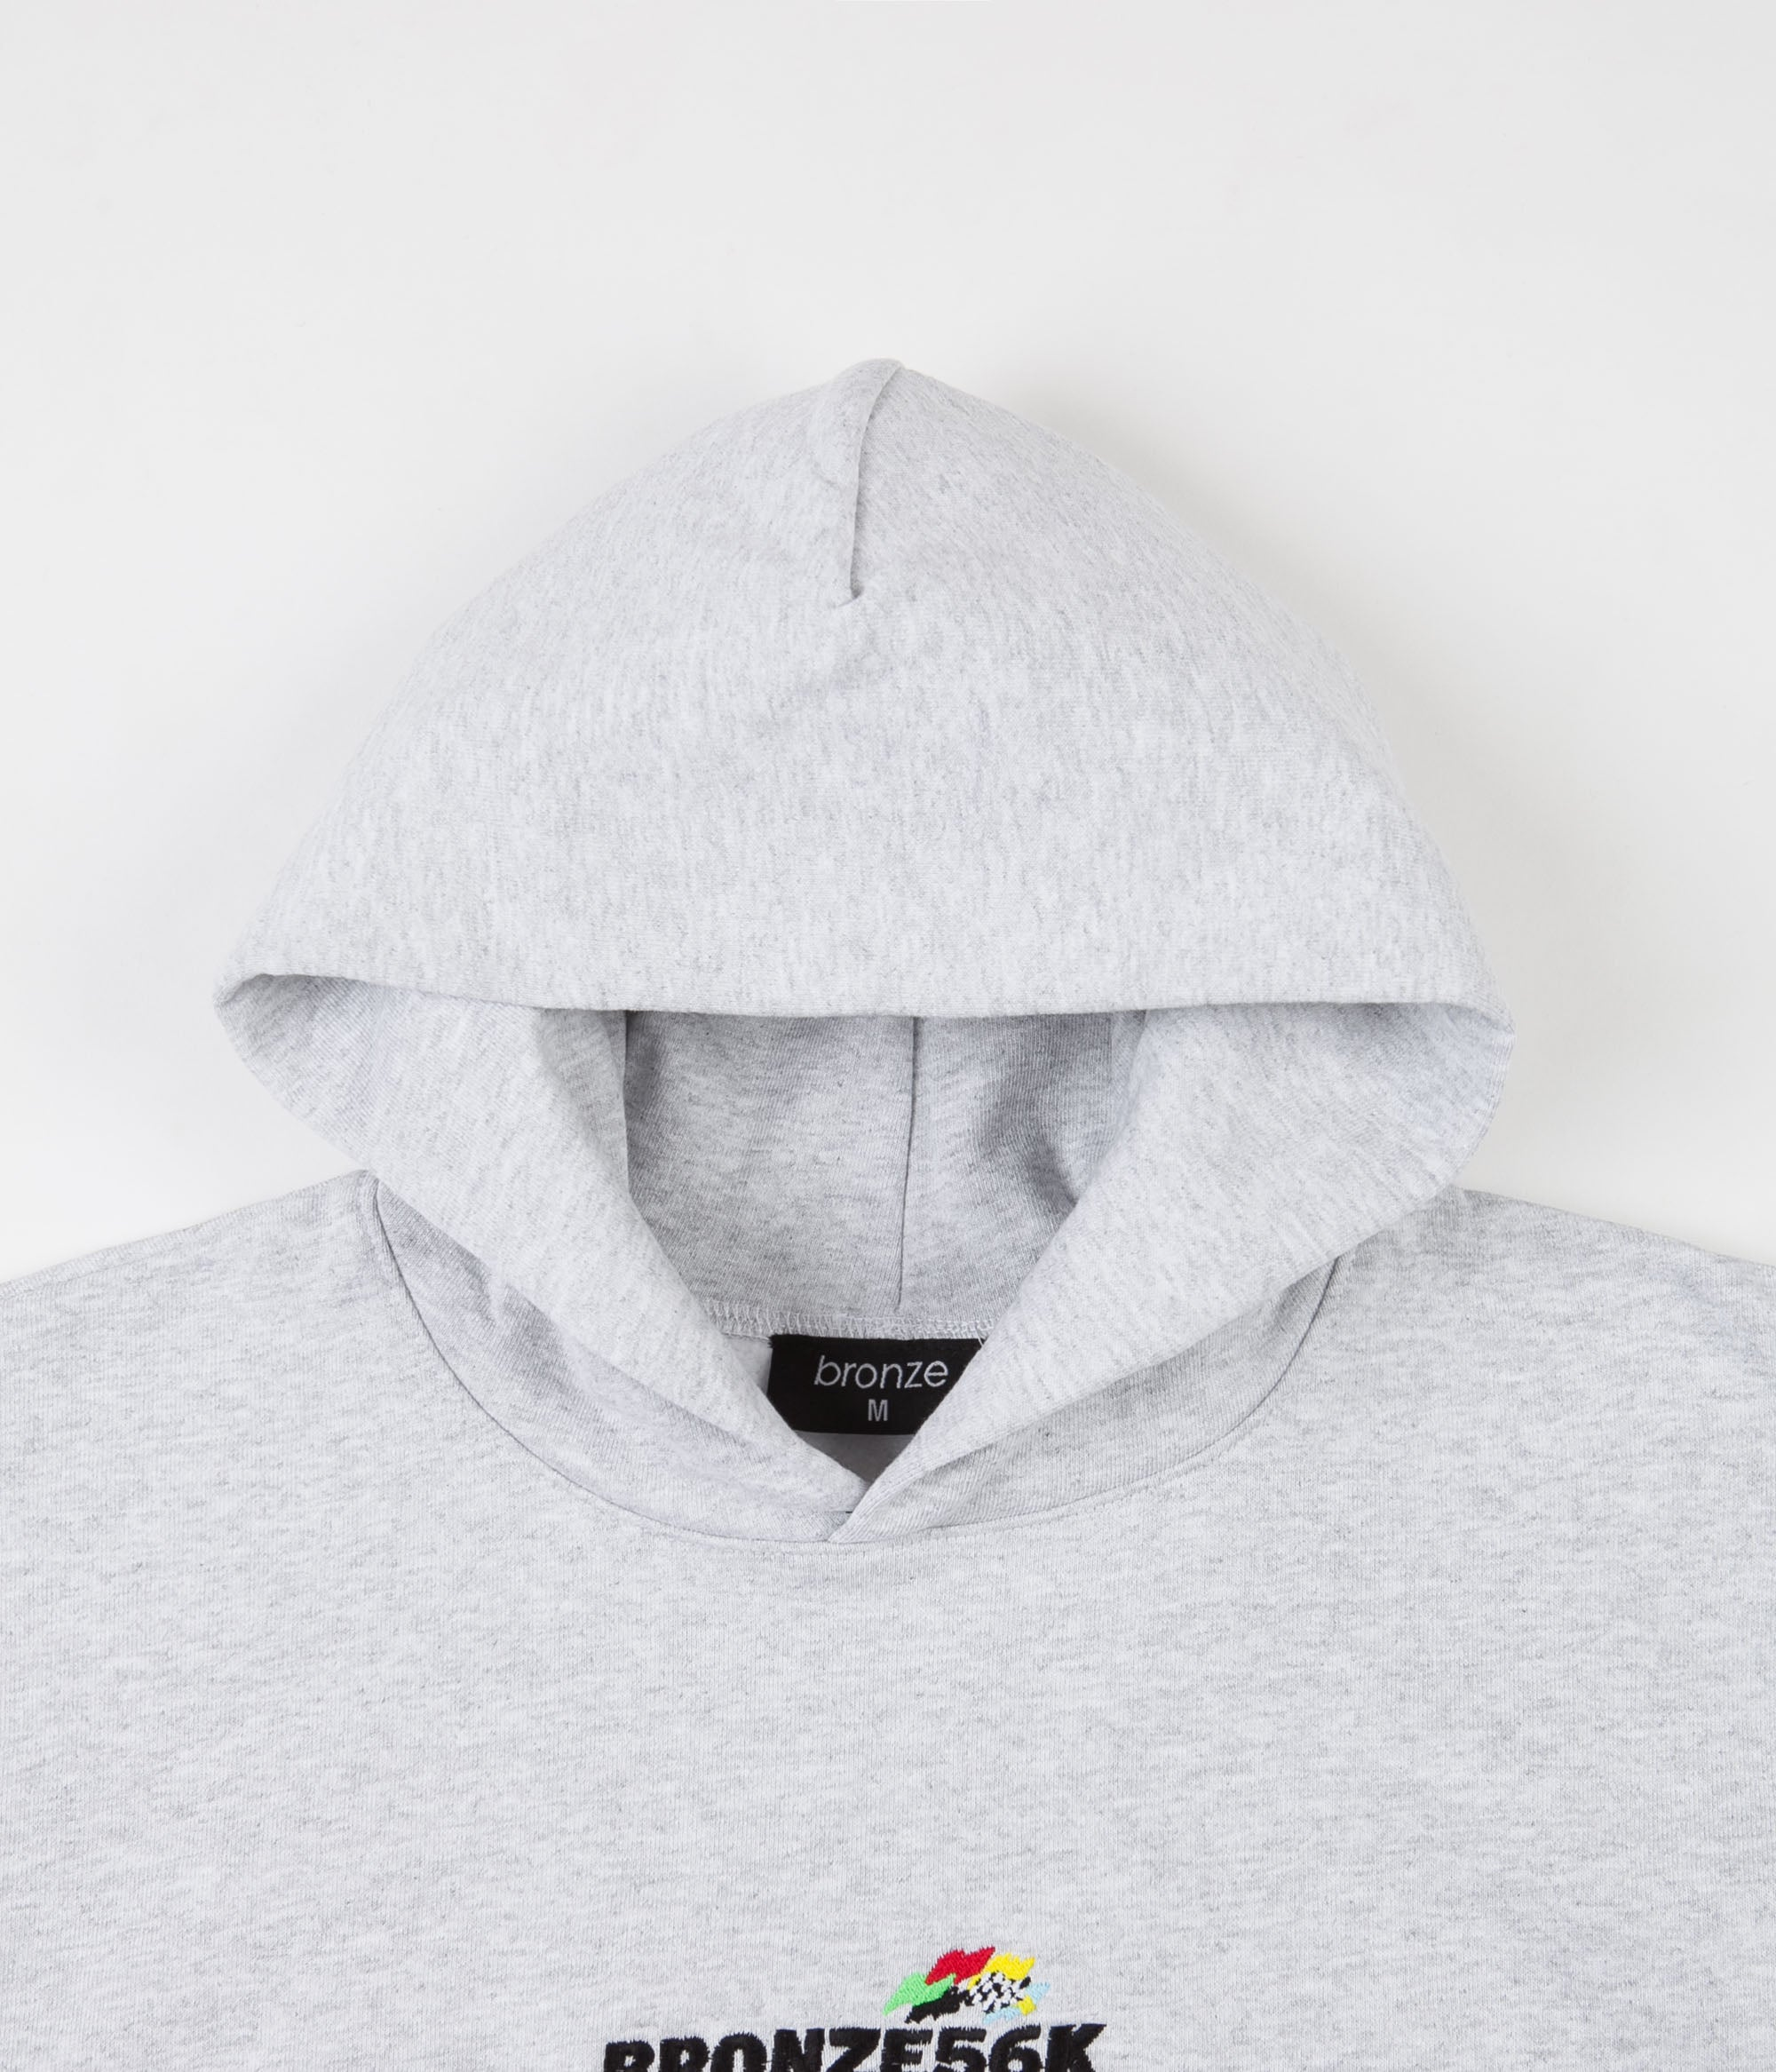 Bronze 56k Embroidered Speed Hoodie - Ash Grey